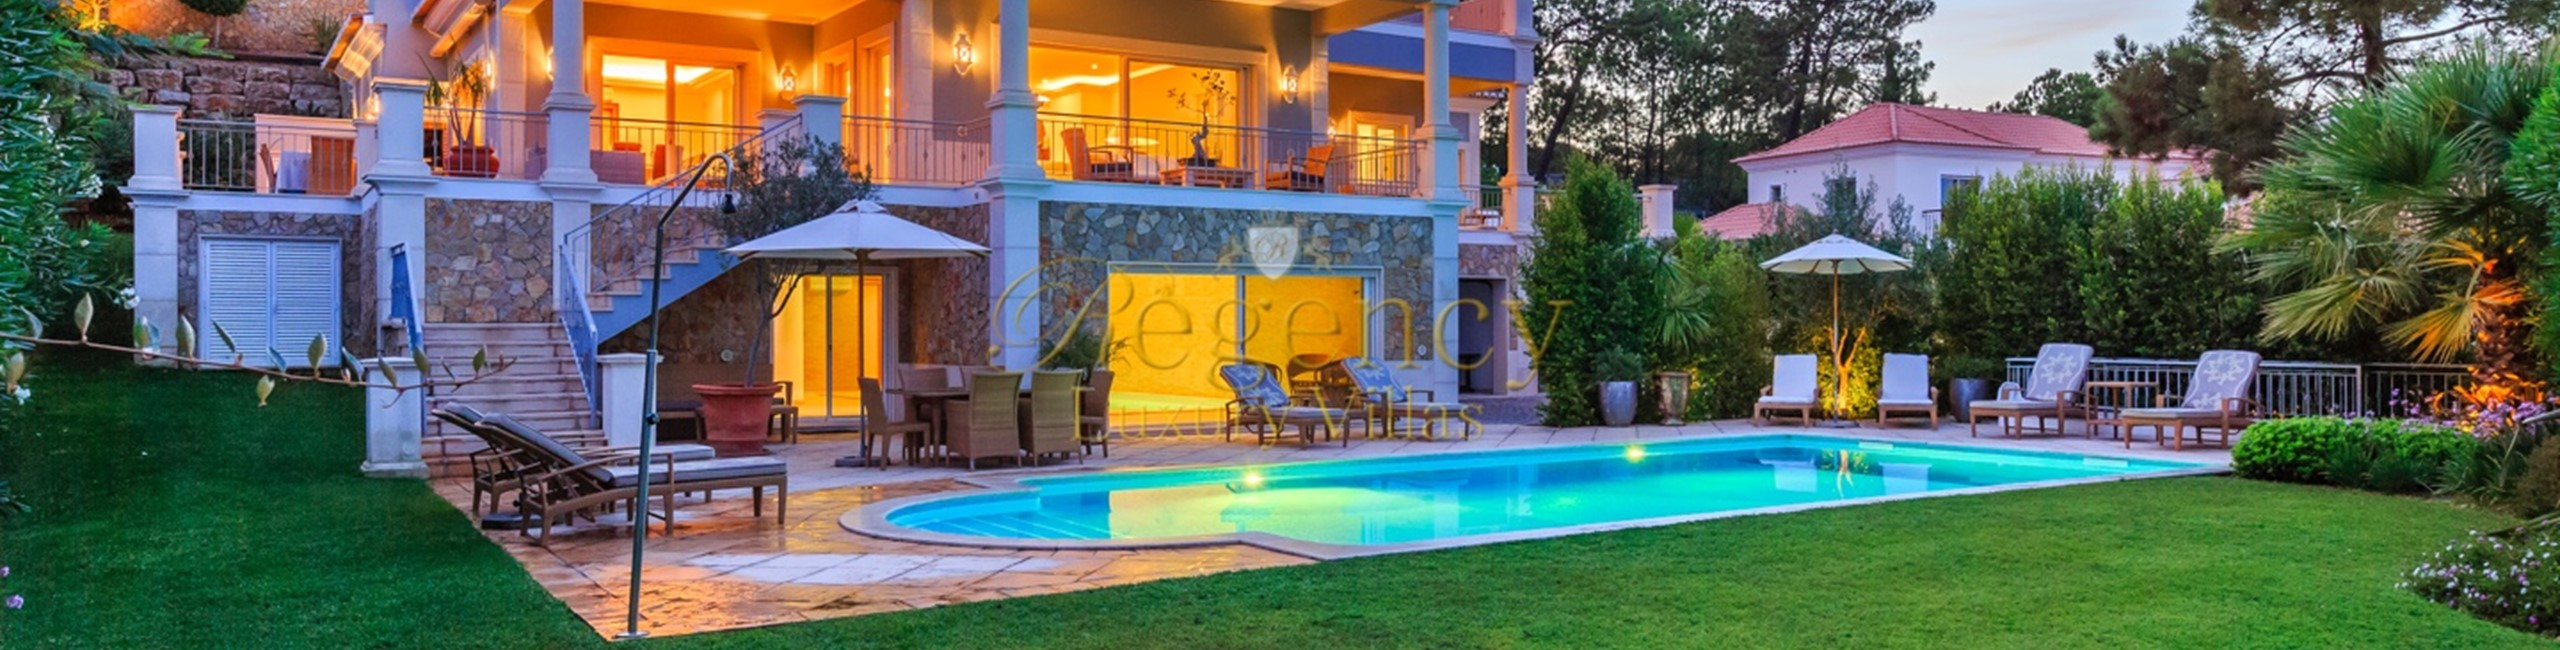 Villa To Rent In Quinta Do Lago 6 Bedroom Property With Gym